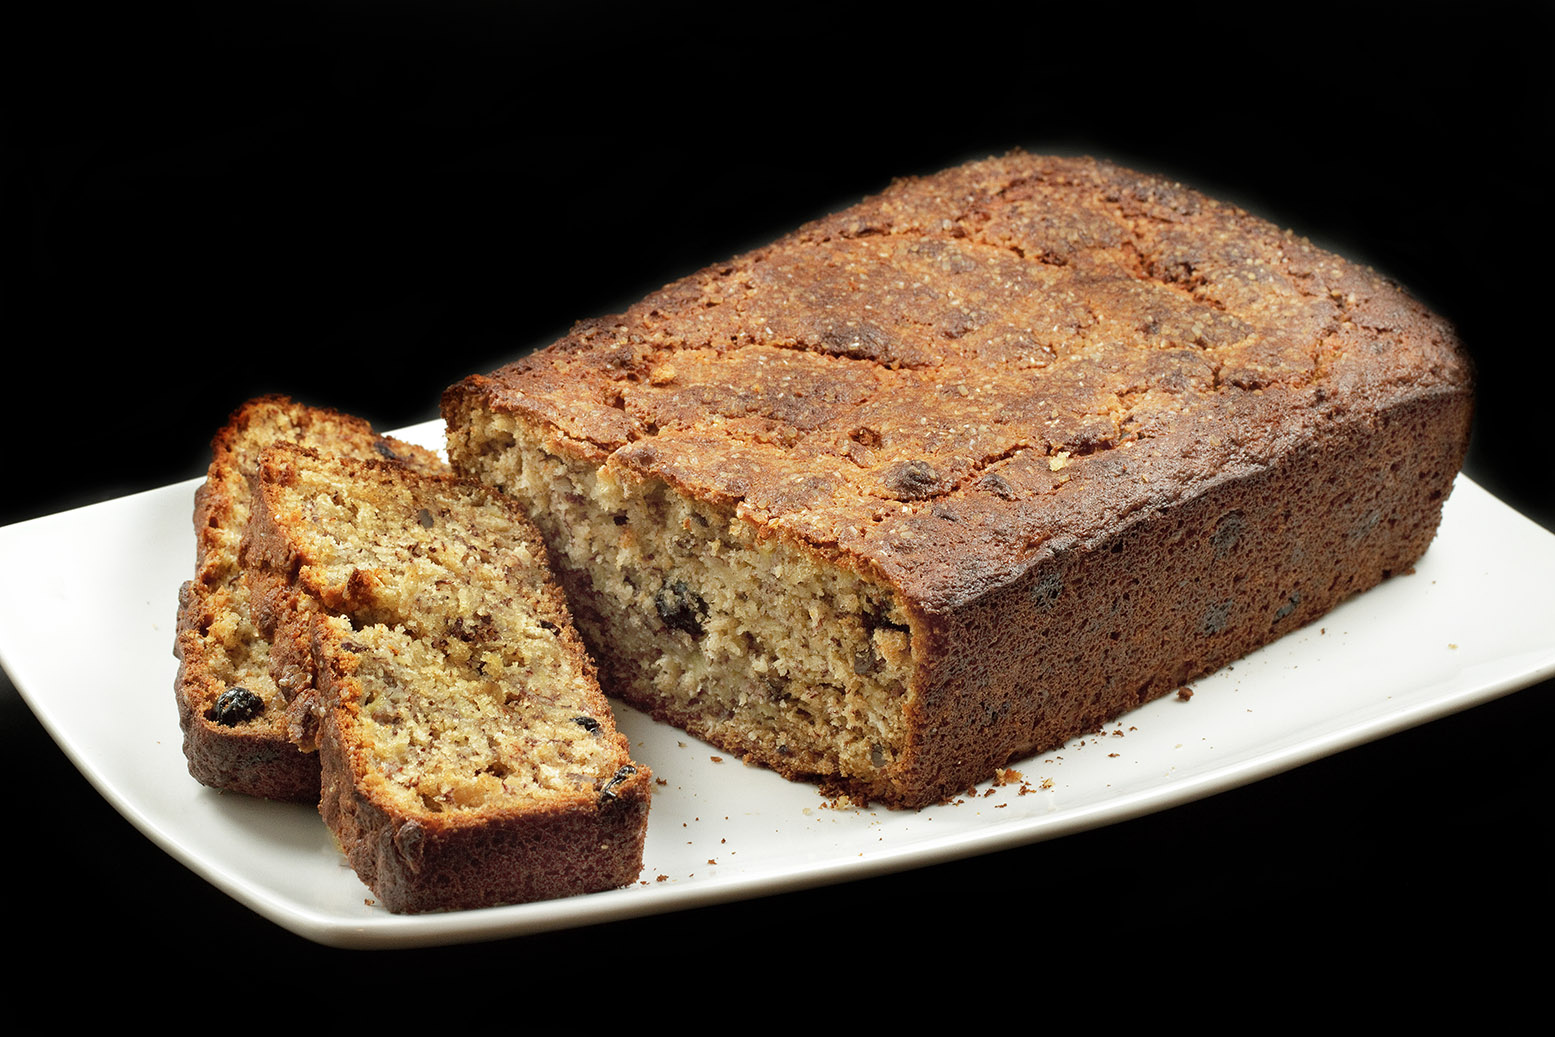 Banana Blueberry Oatmeal Bread